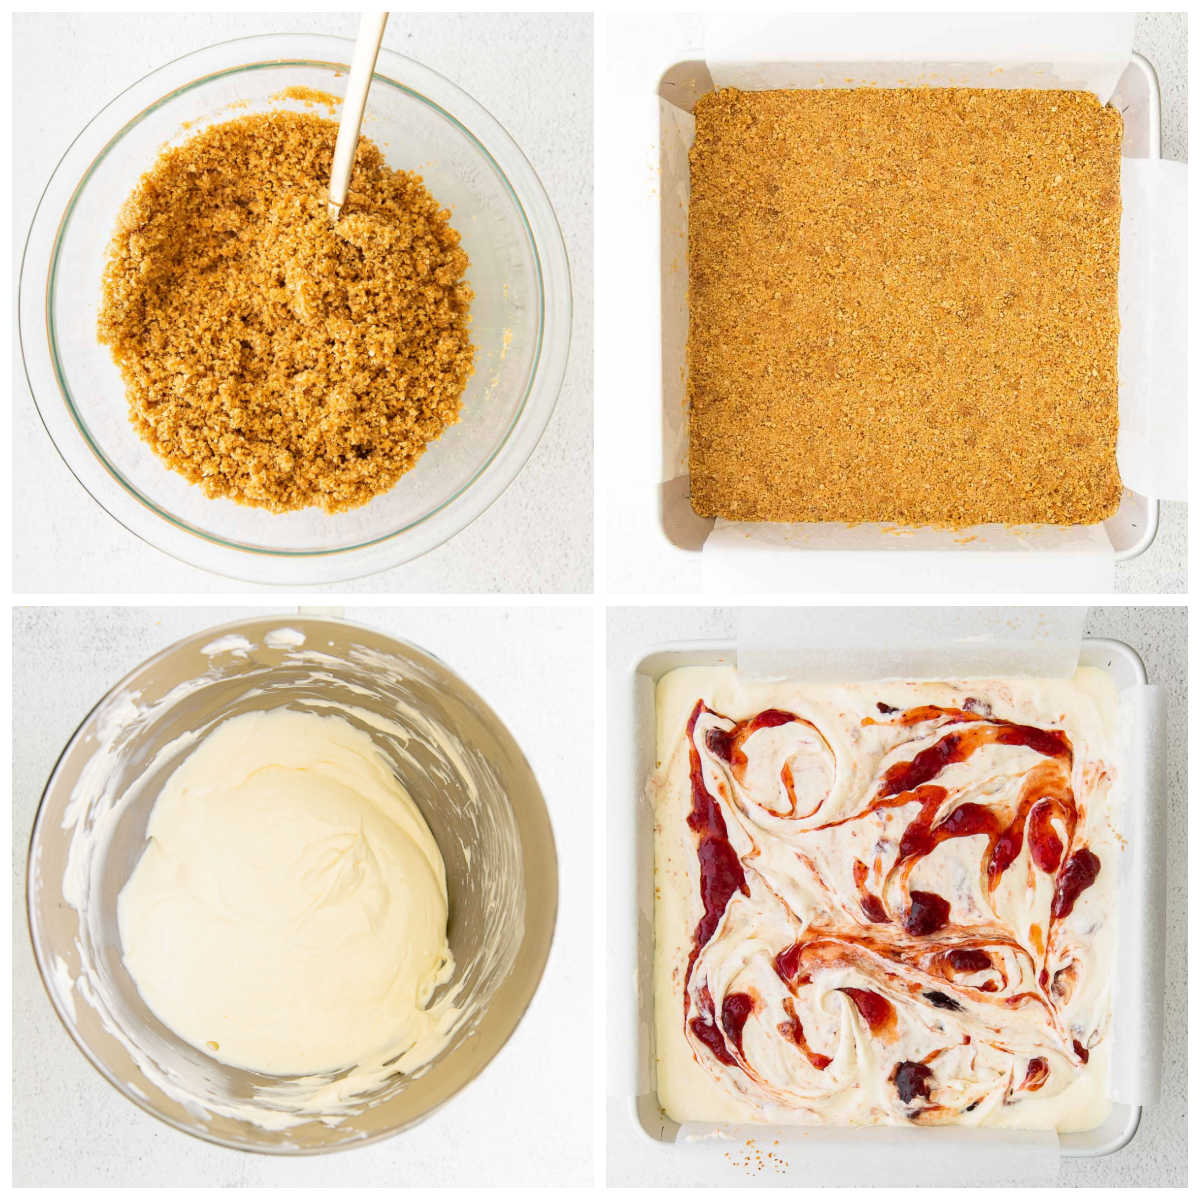 graham cracker crust mixed in a bowl and pressed into a square baking dish and cheesecake mixture being made and poured in